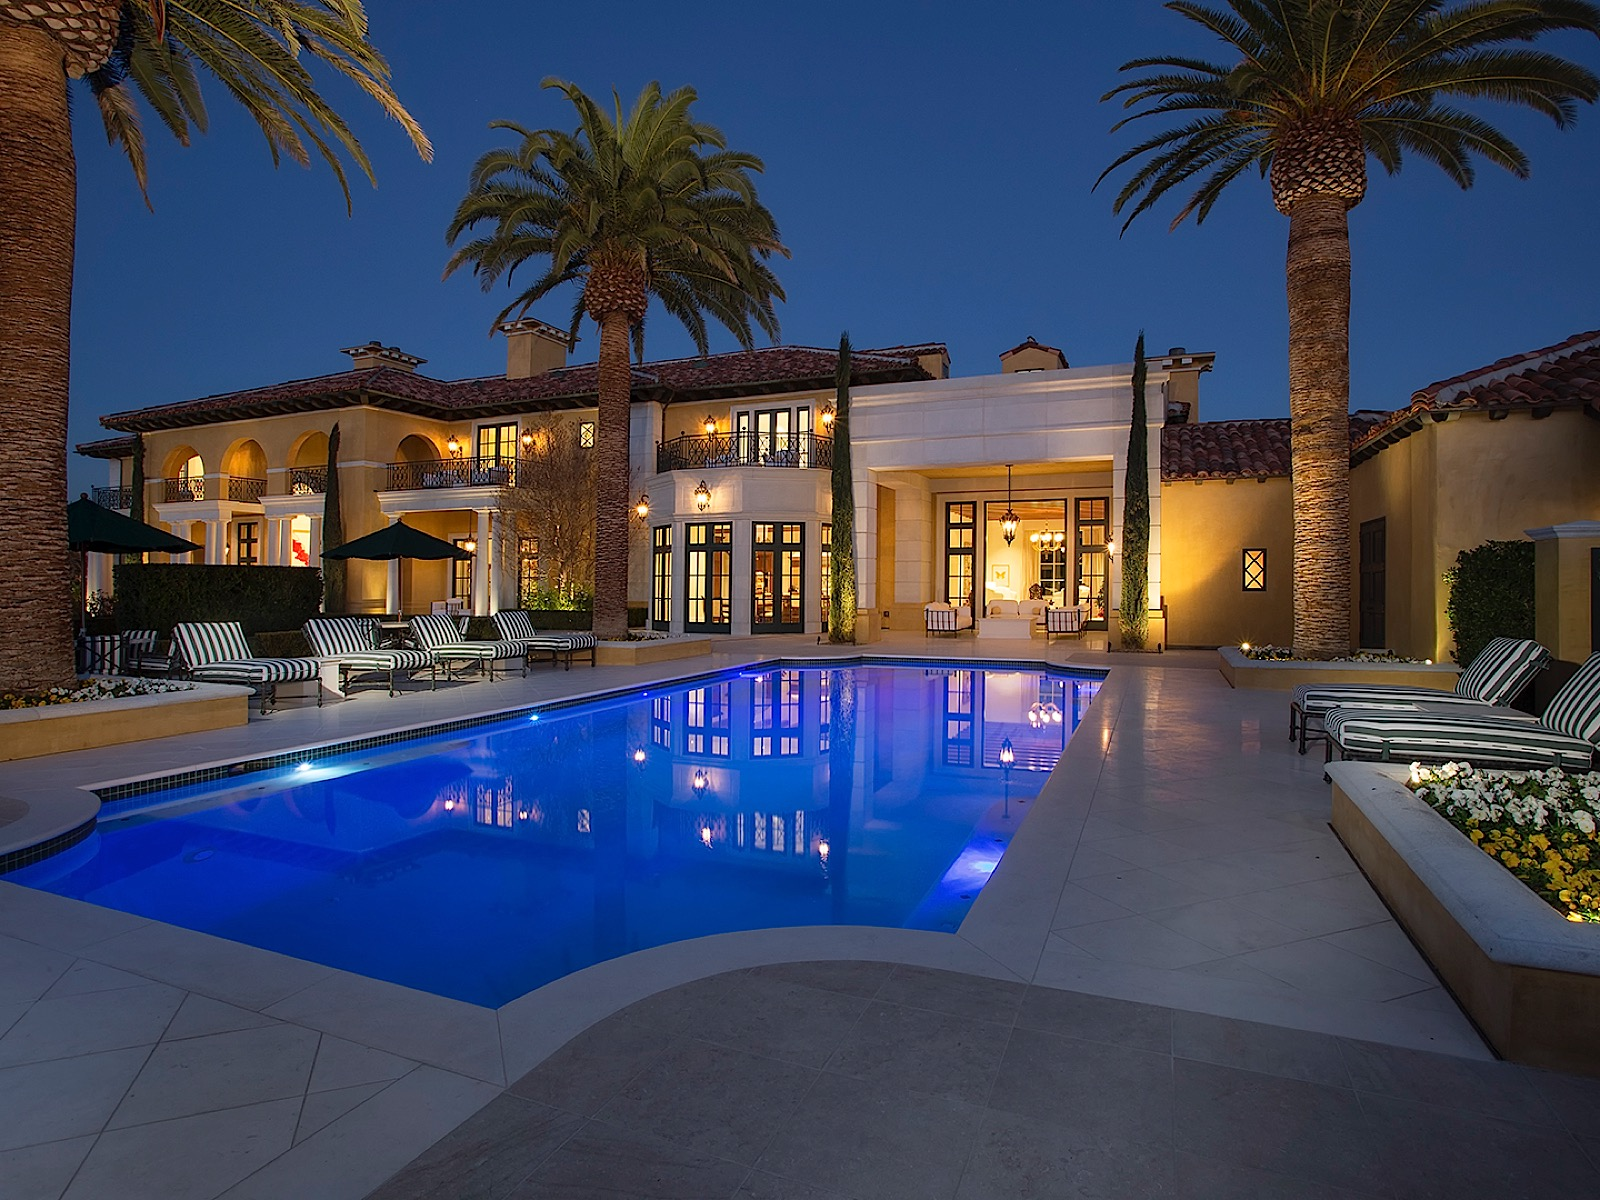 Property For Sale at The Rameses Estate at the Enclave On the Most Prestigious Street in Las Vegas